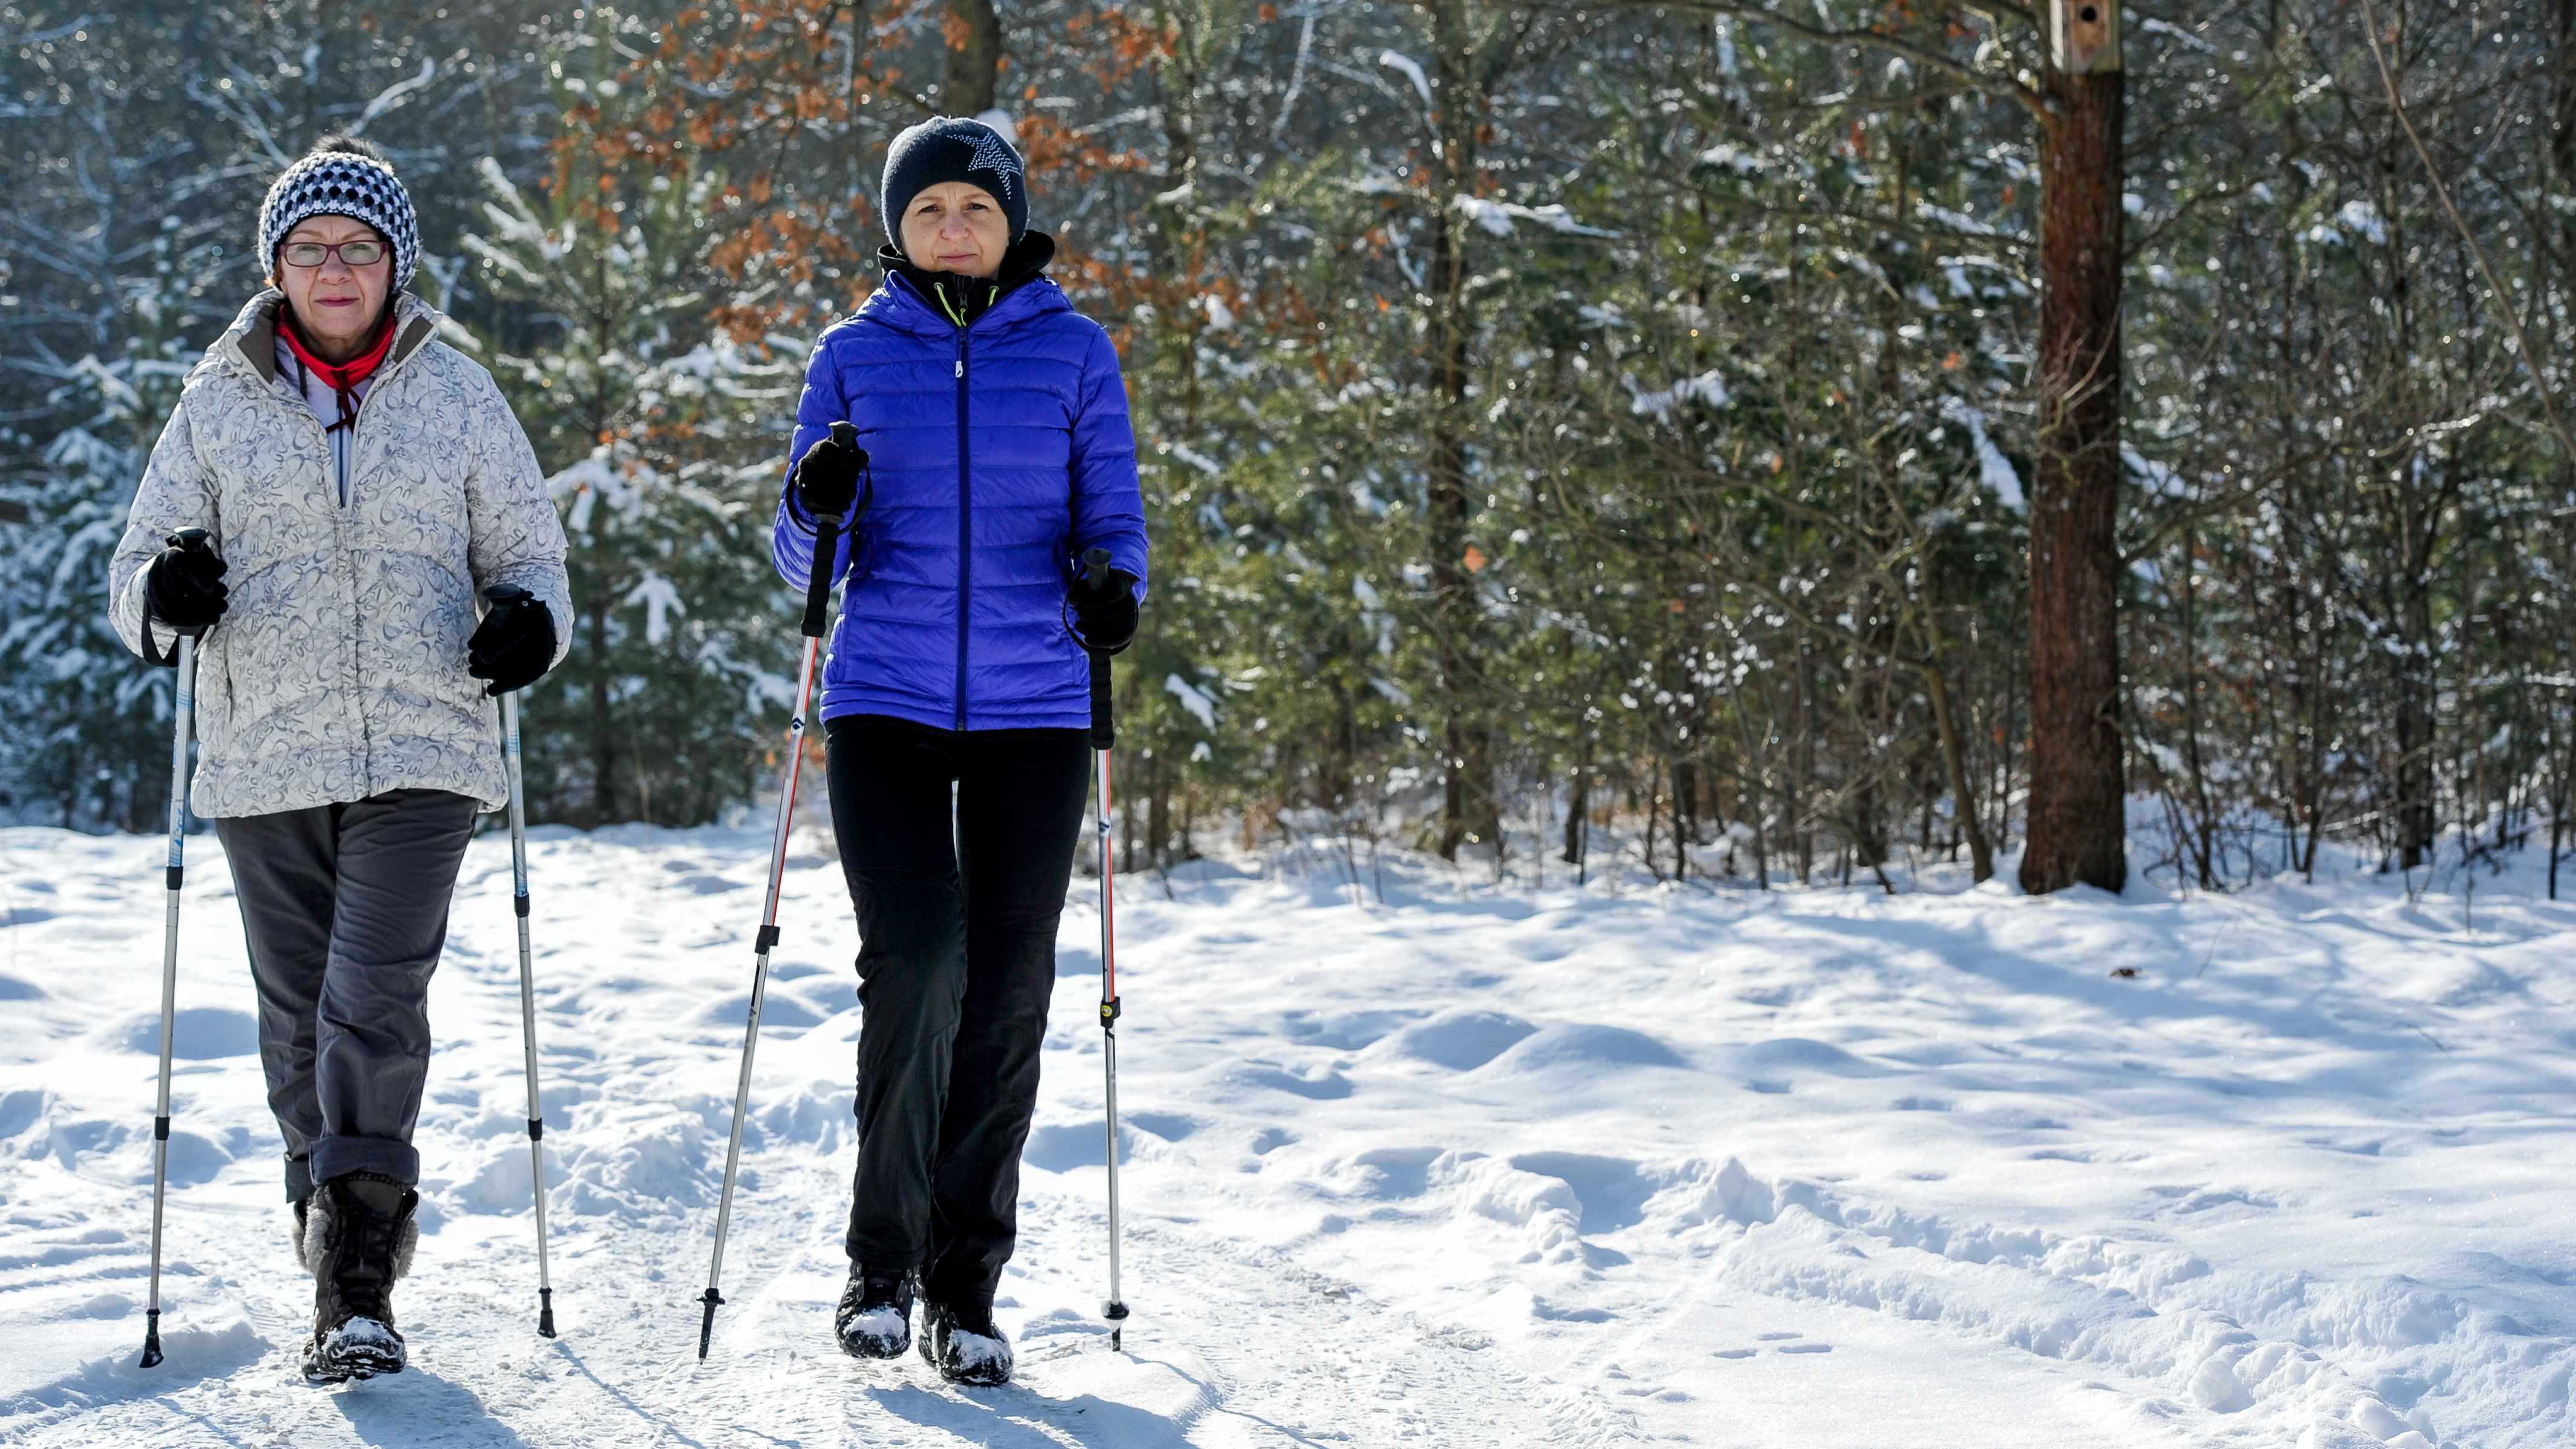 women cross-country skiing and exercising in the snow